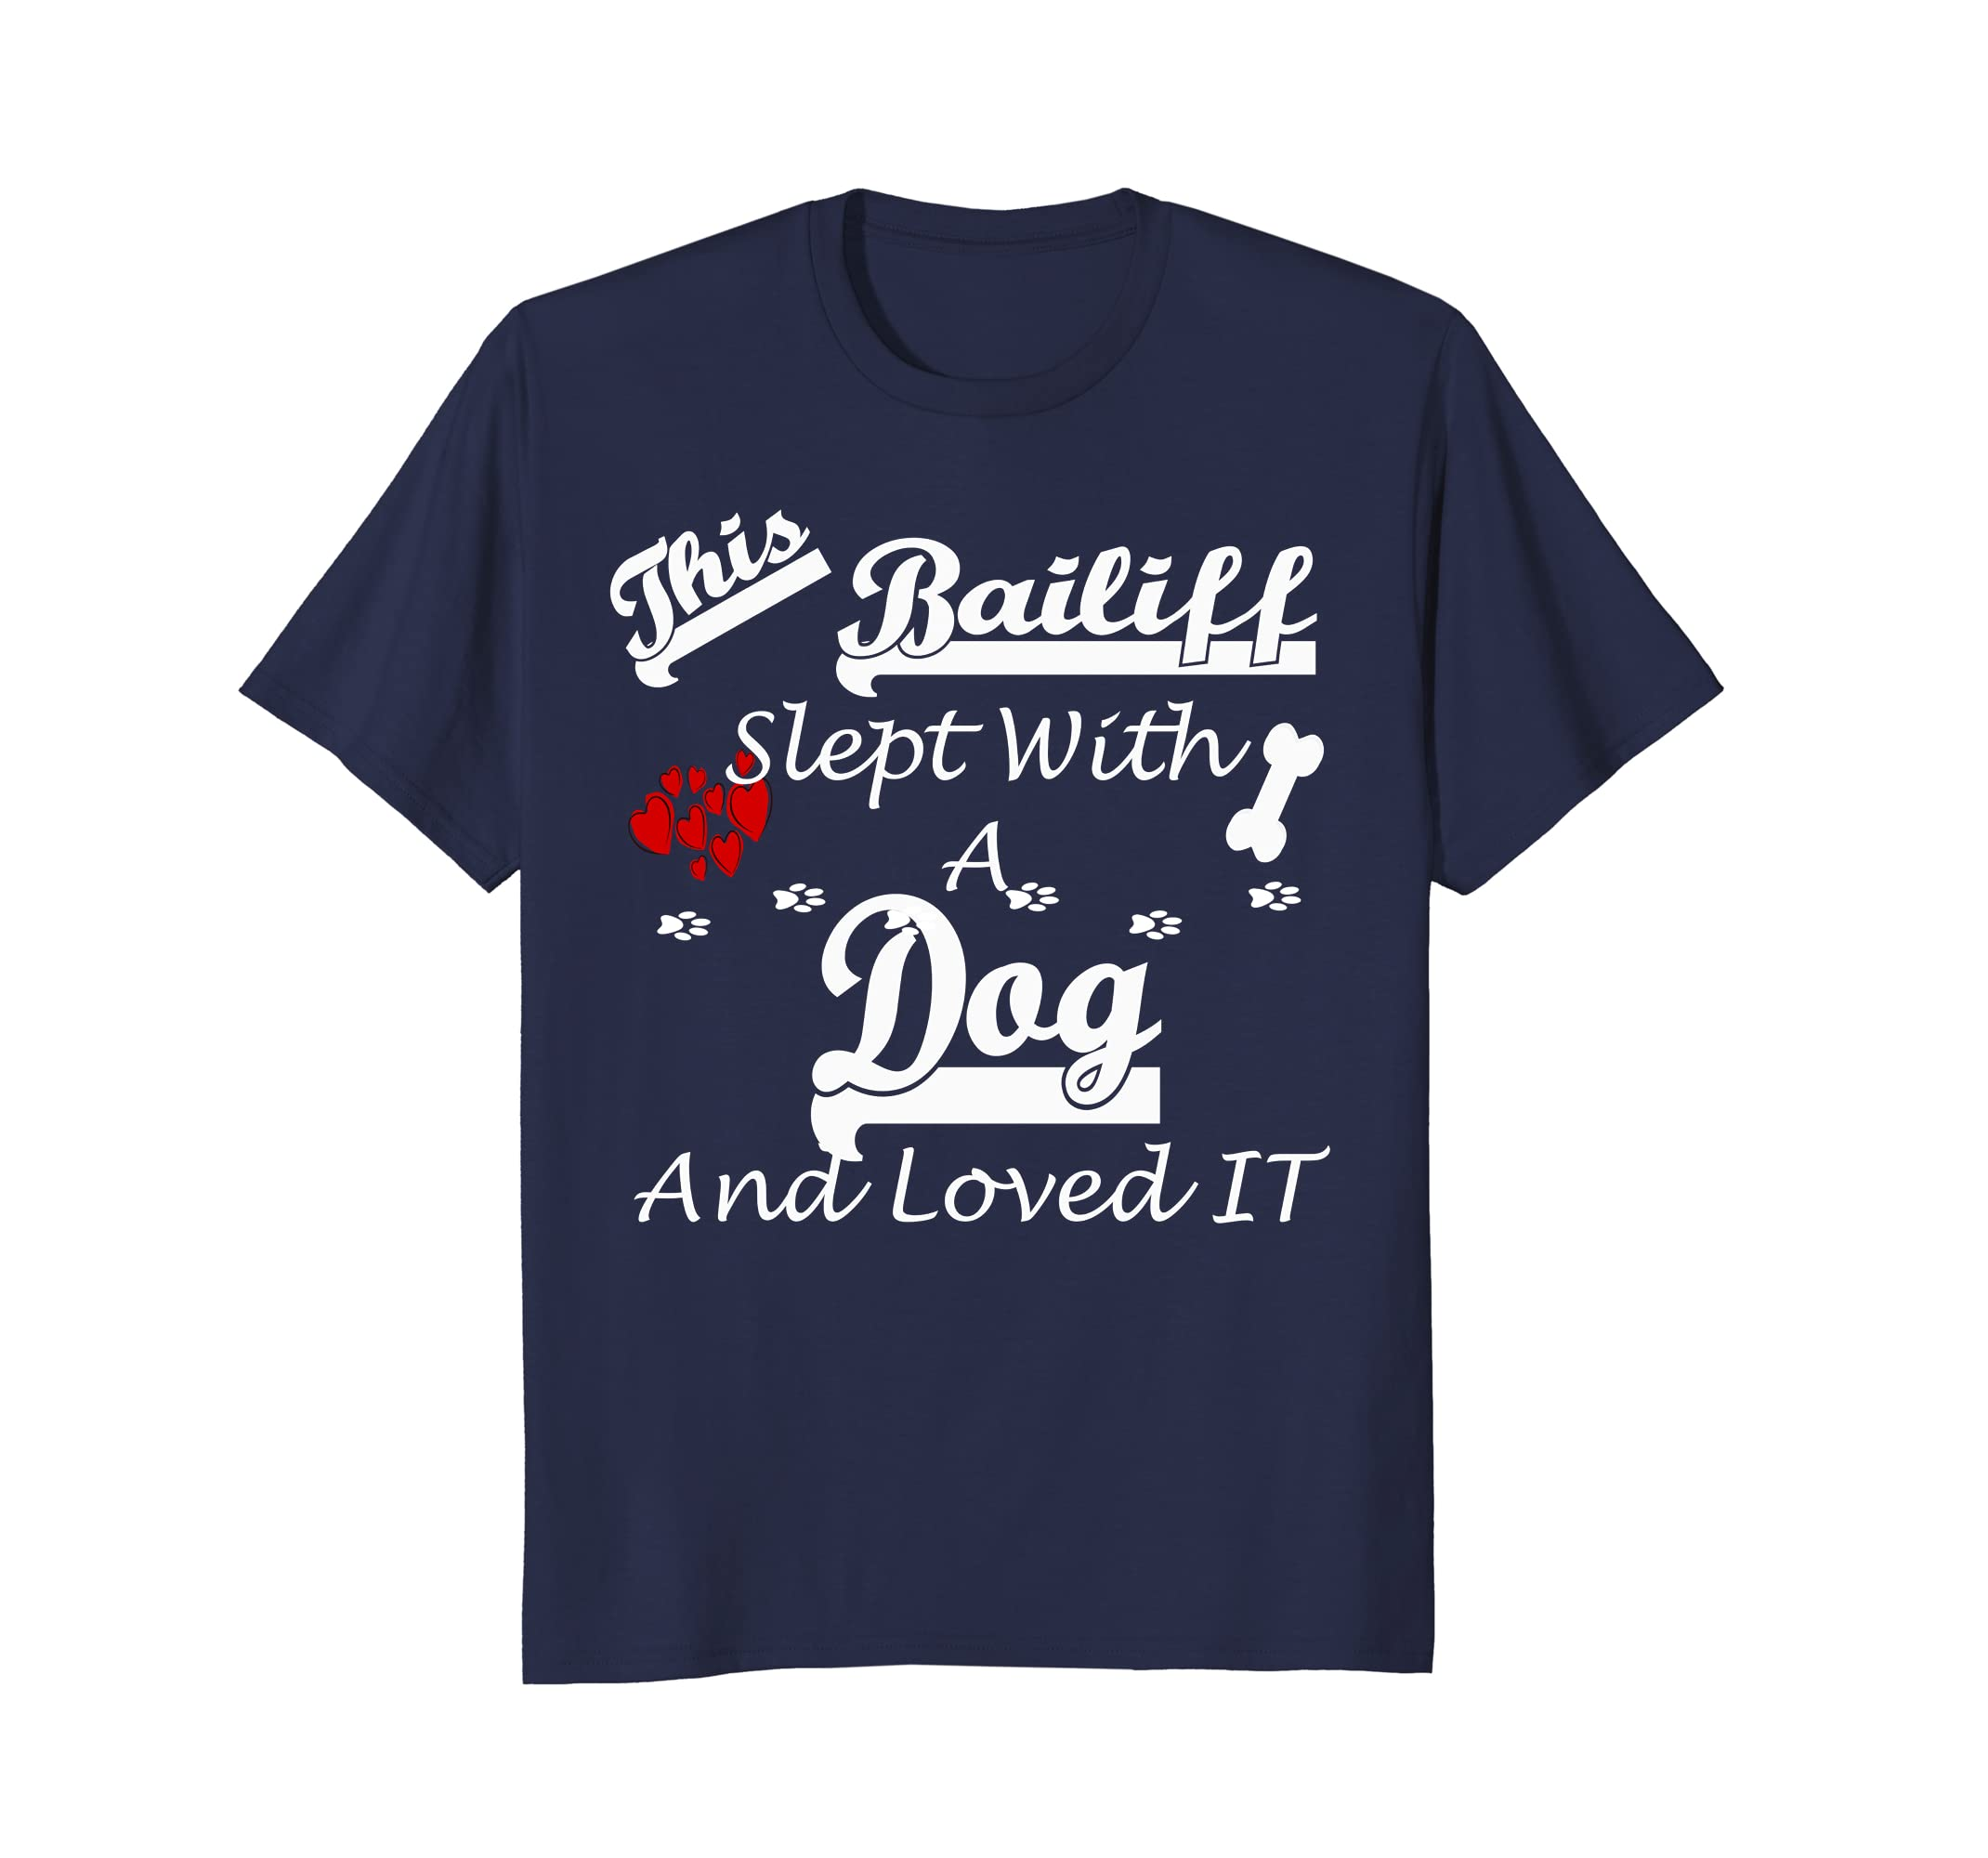 Bailiff Slept With A Dog and Loved It Funny Tshirt-AZP